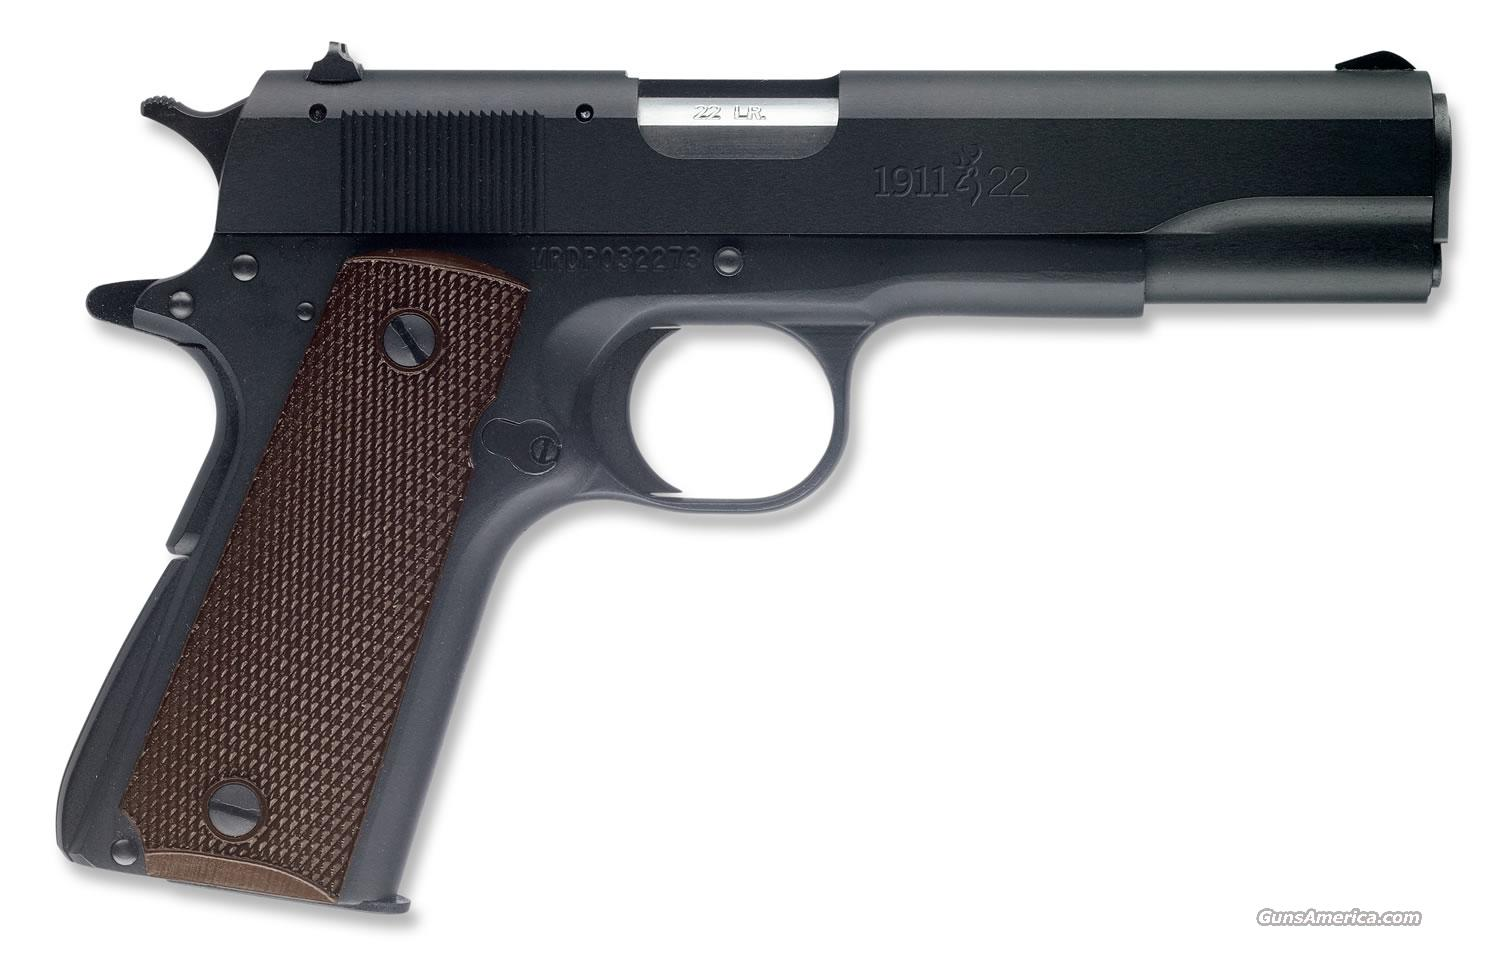 "Browning 1911-22 A1 pistol 22 LR w/ 4.25"" bbl.   New!   LAYAWAY OPTION    051802490  Guns > Pistols > Browning Pistols > Other Autos"